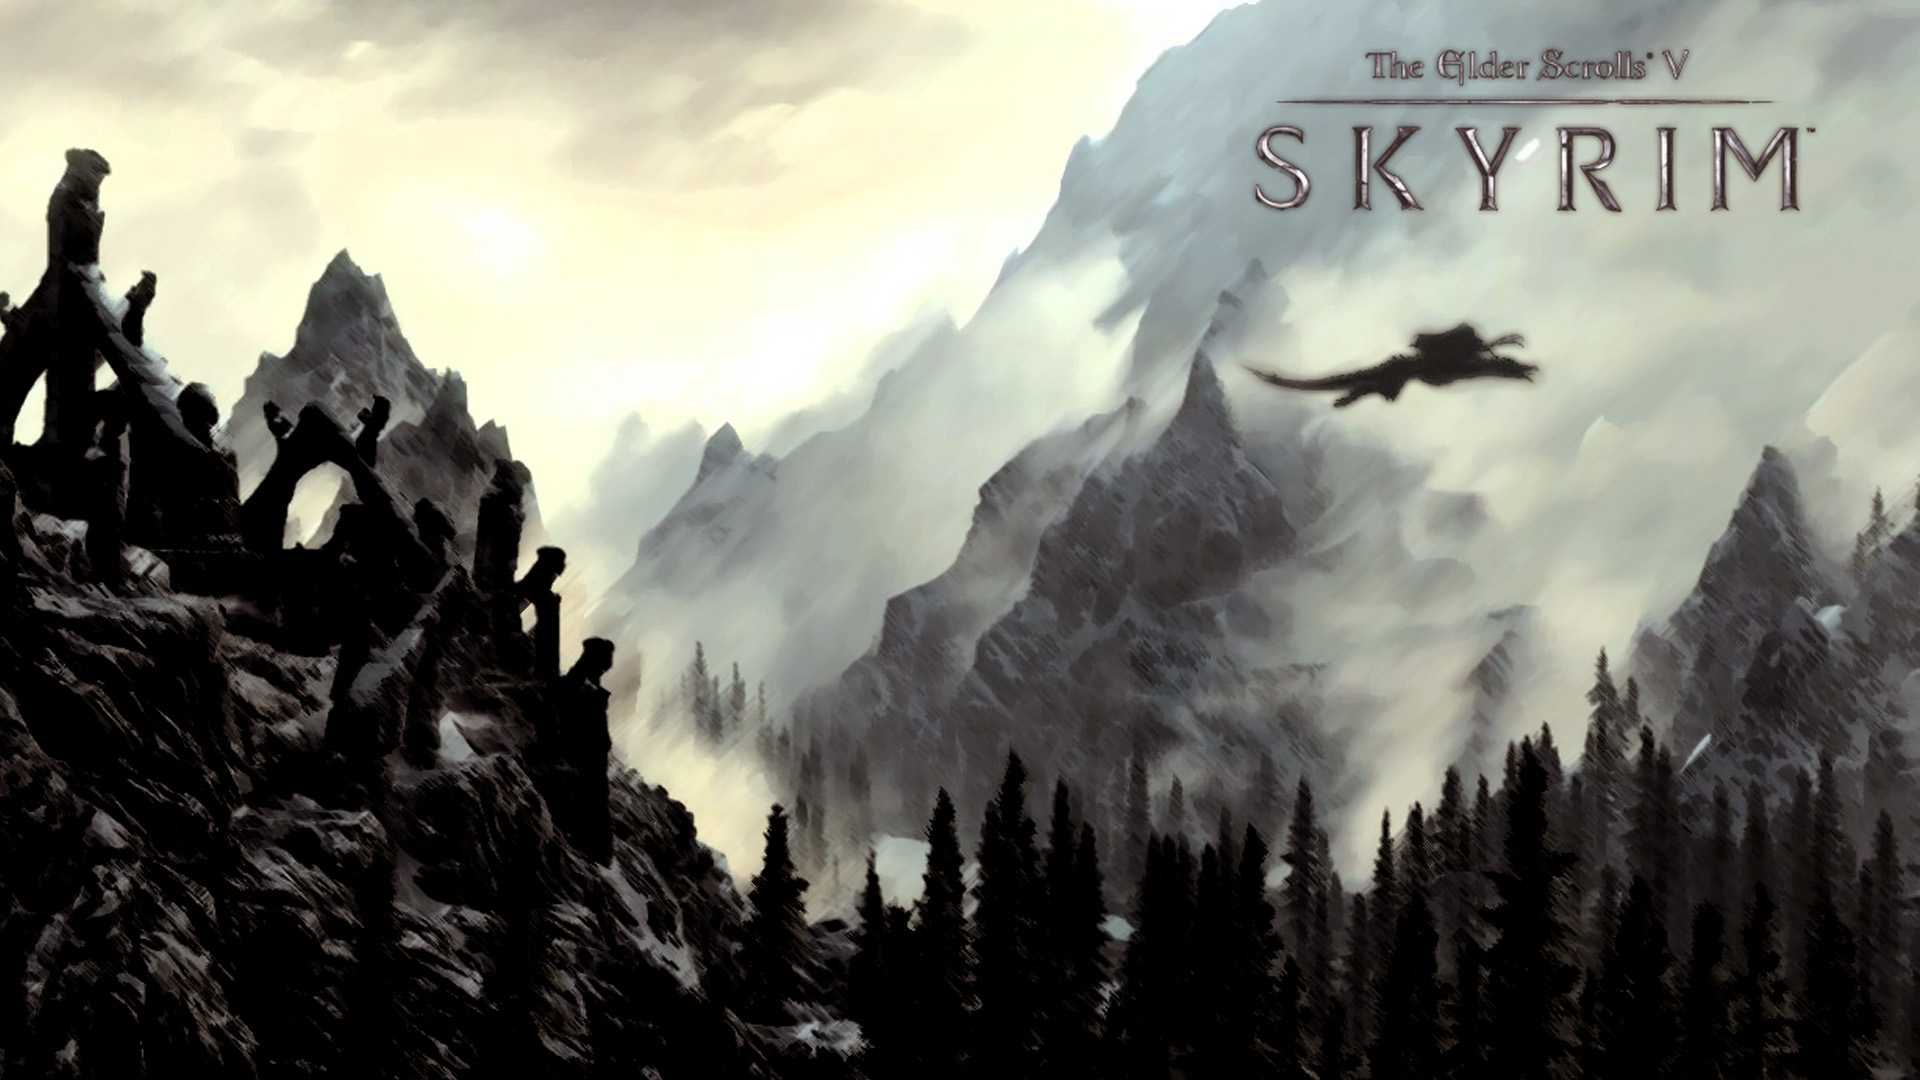 skyrim Computer Wallpapers, Desktop Backgrounds | 1920x1080 | ID